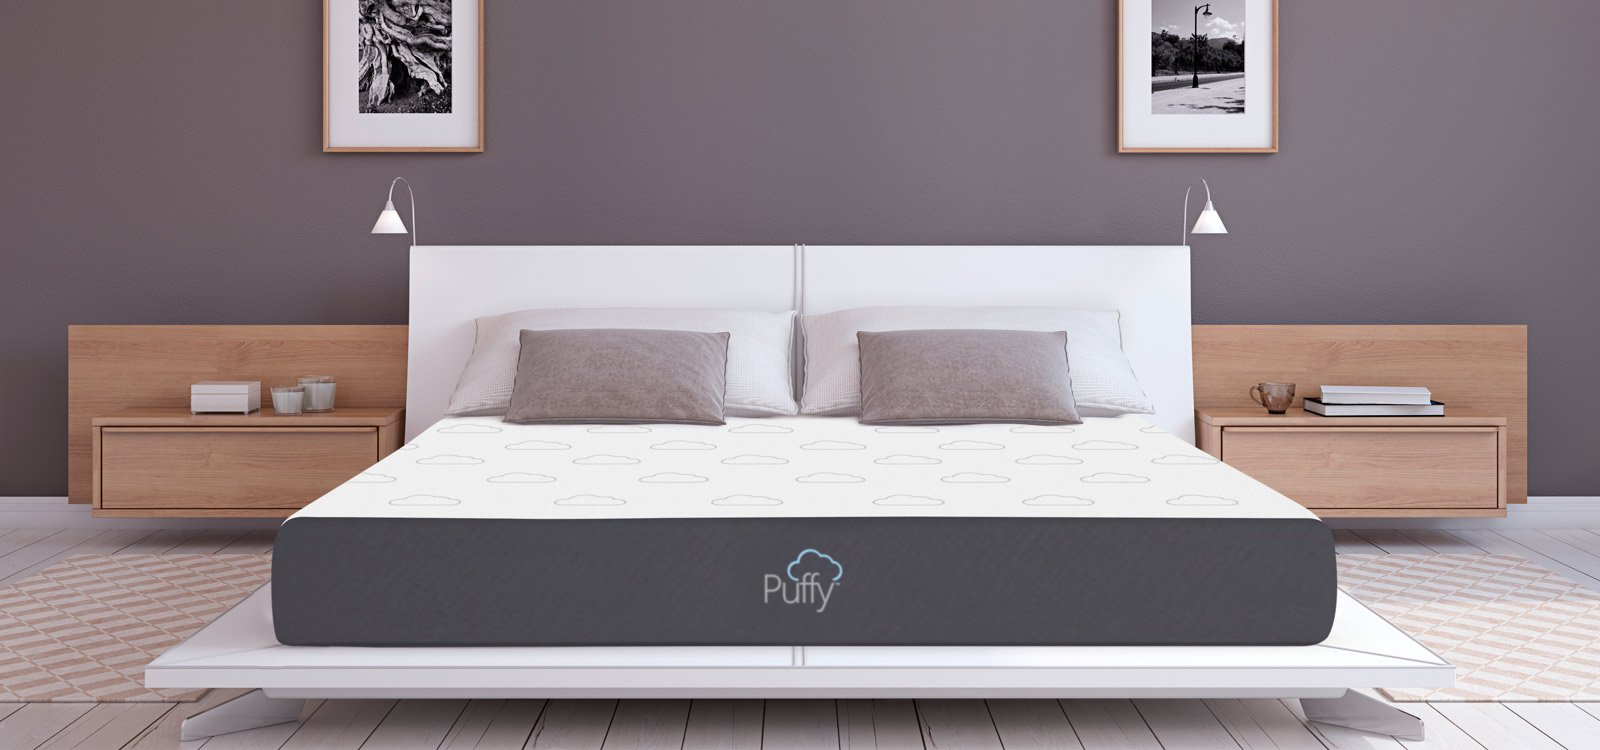 Puffy Has This New Revolutionary Patent Pending Deep Sleep Foam Mattress That Not Only Gives You A Comfortable Night S But Helps To Soothe The